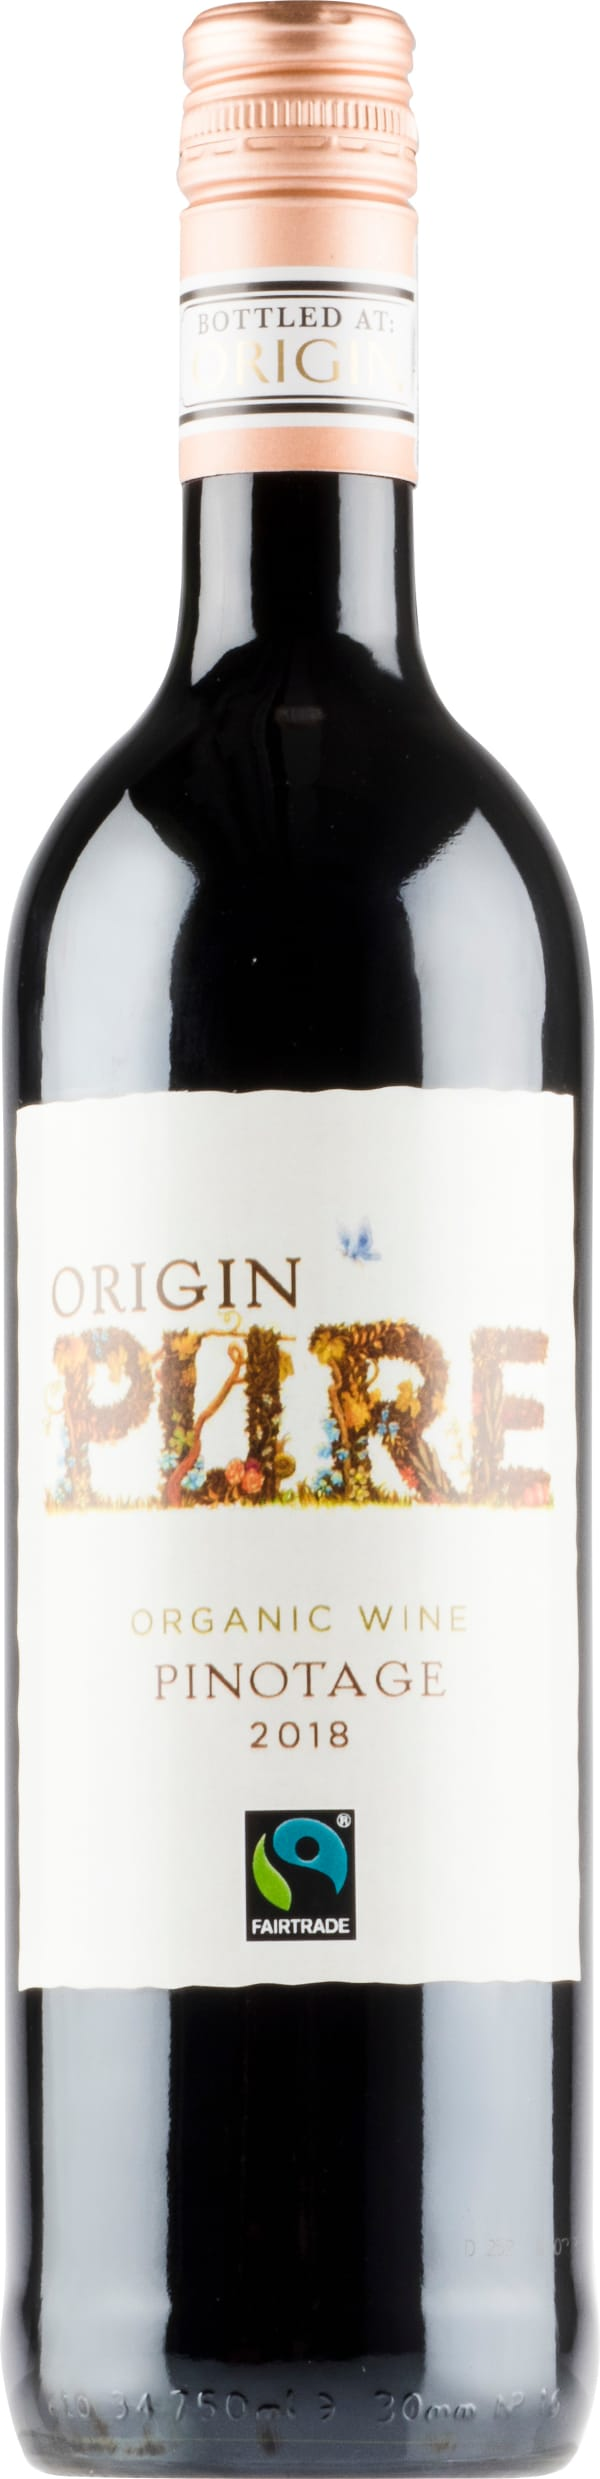 Origin Pure Pinotage 2018